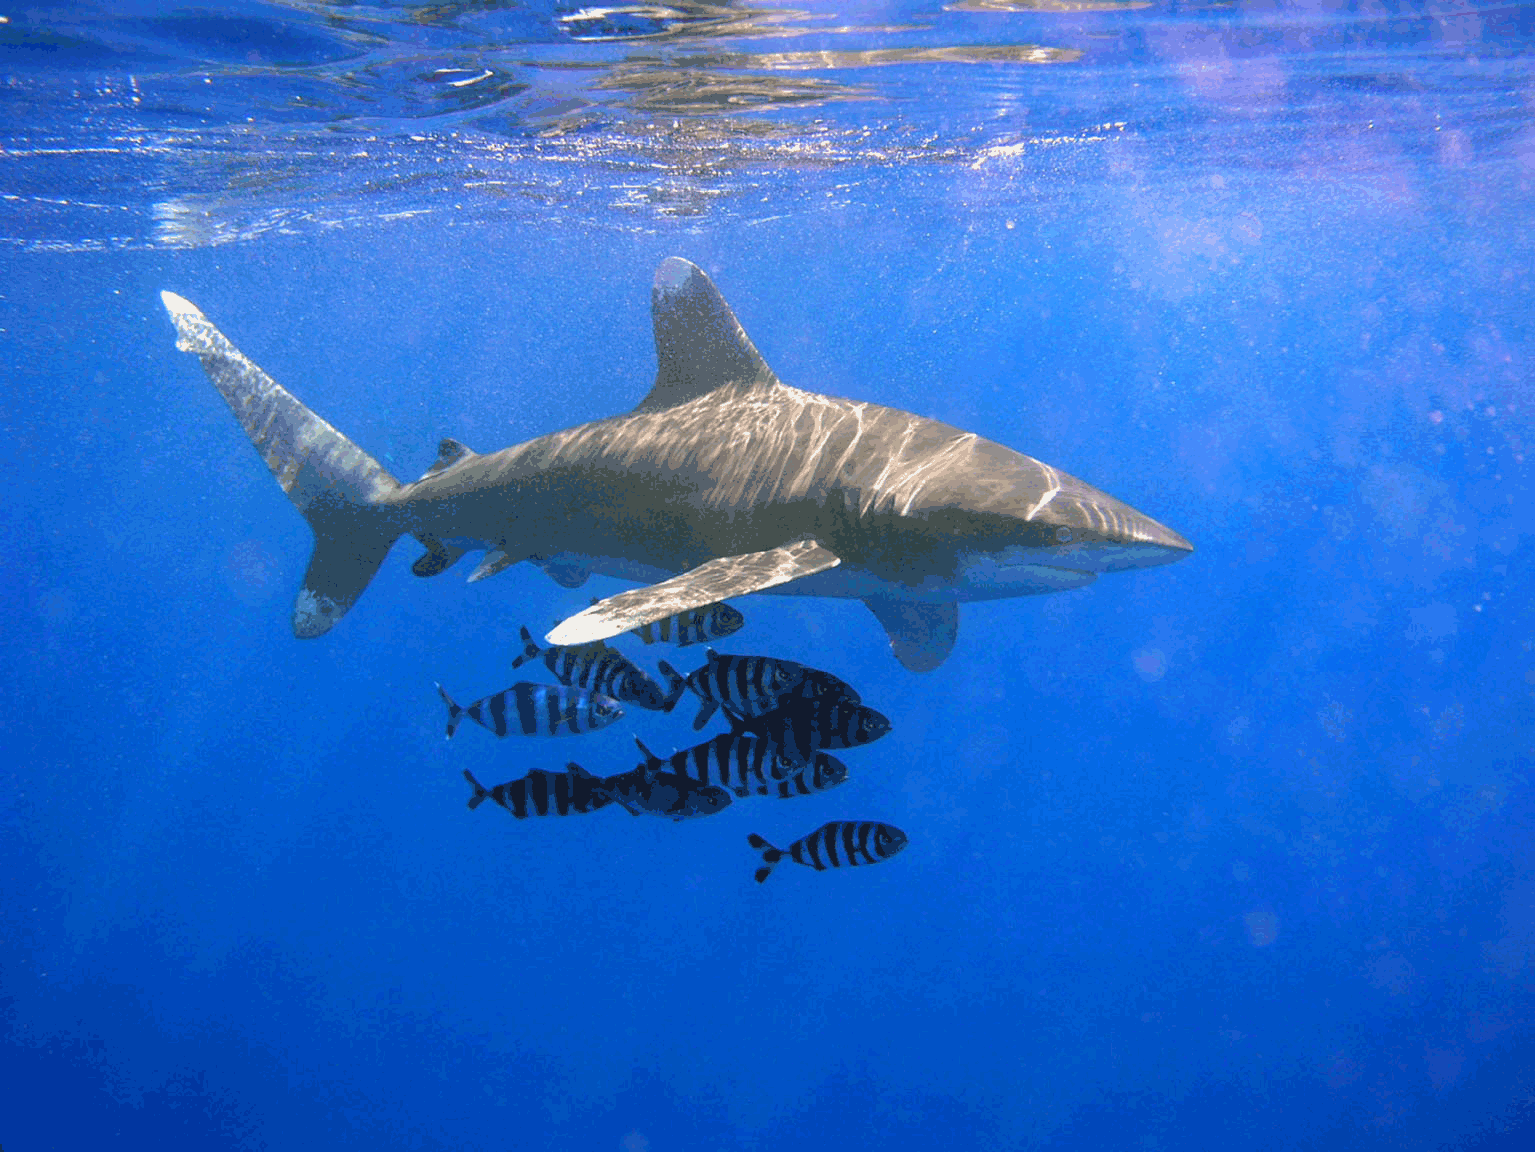 Oceanic whitetip shark - Wikipedia